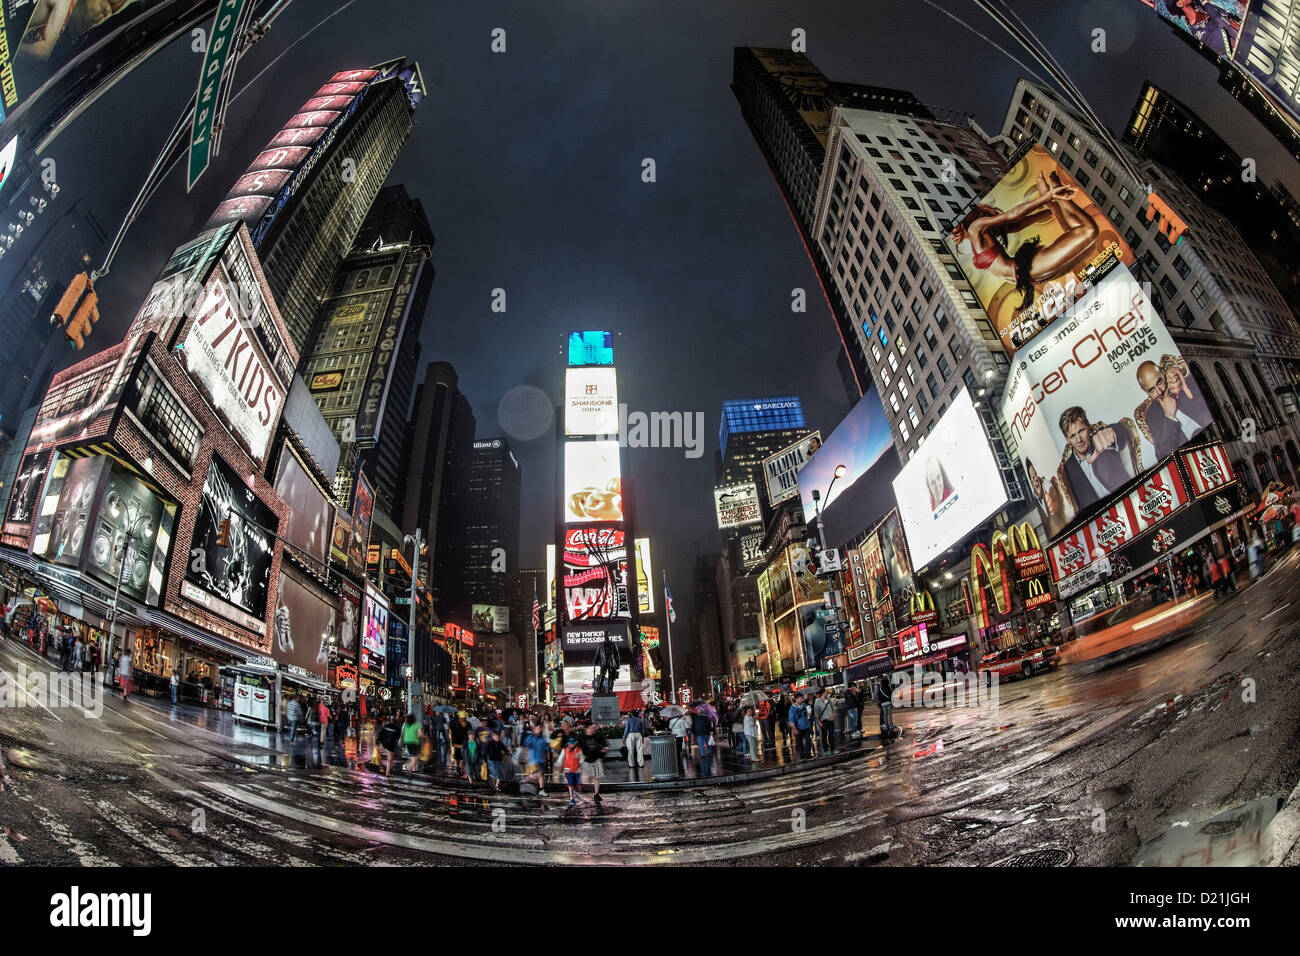 Times Square at twilight on a rainy day, Broadway, Manhattan, New York City, New York, USA - Stock Image